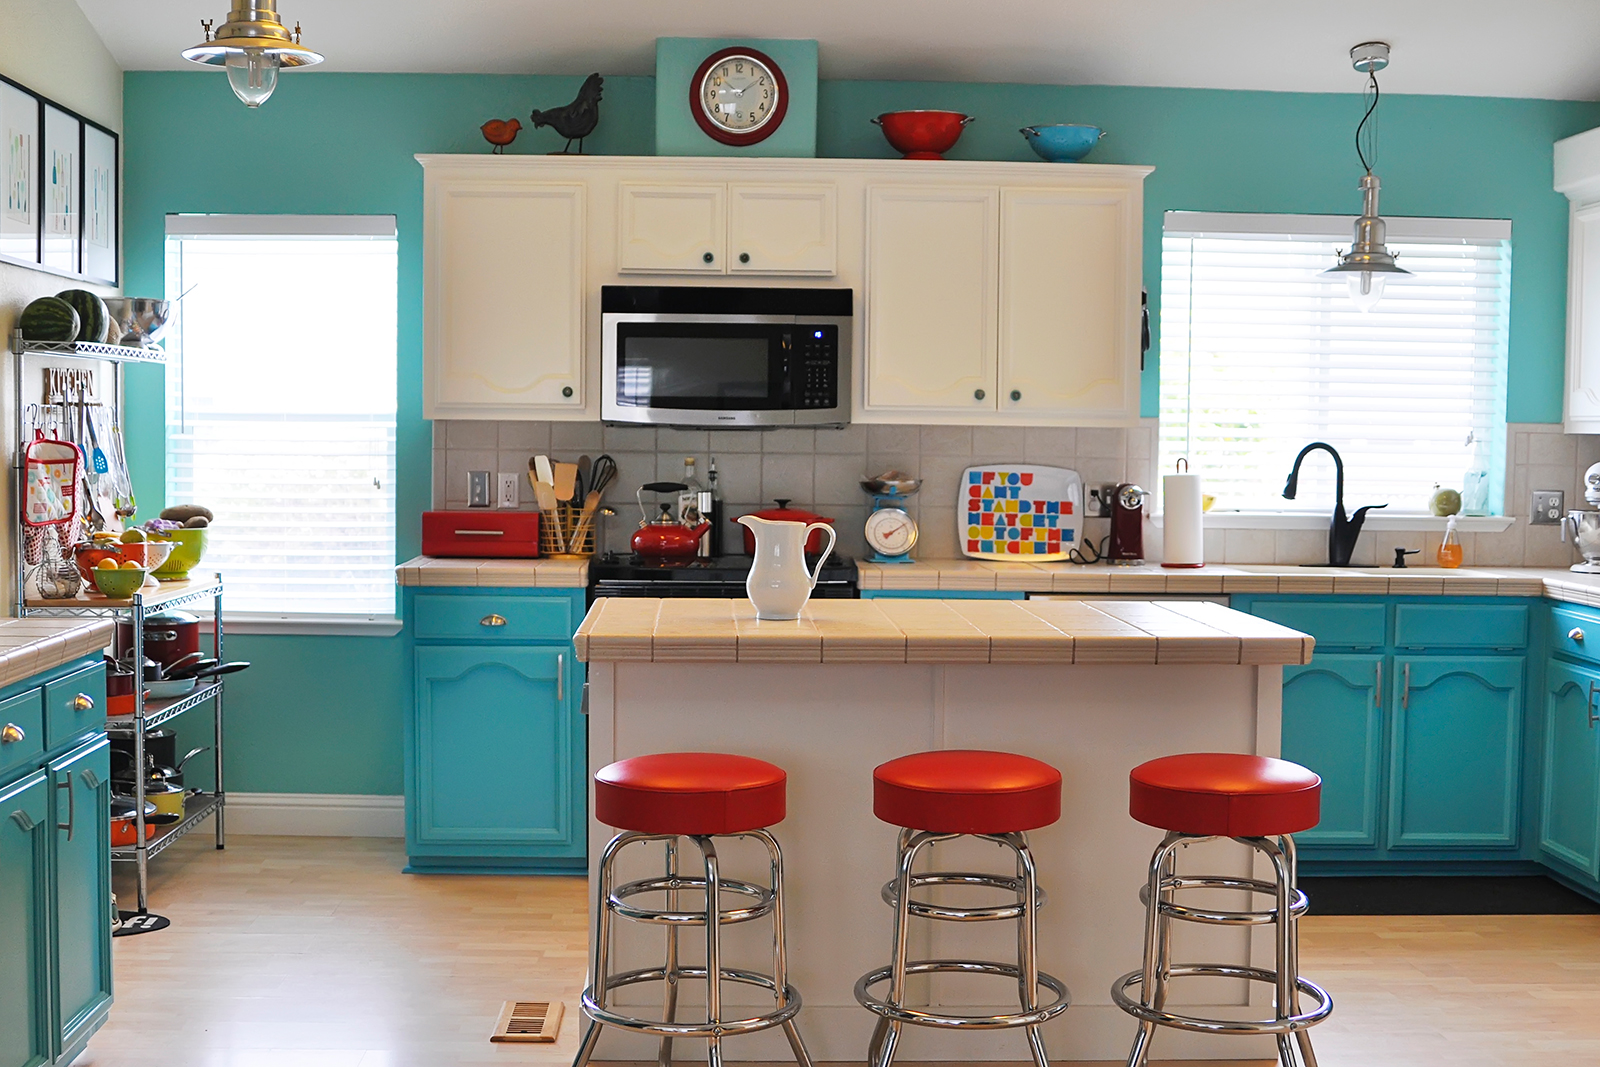 Kitchen Cabinet Wall Color Combinations Colorfully Painted With White